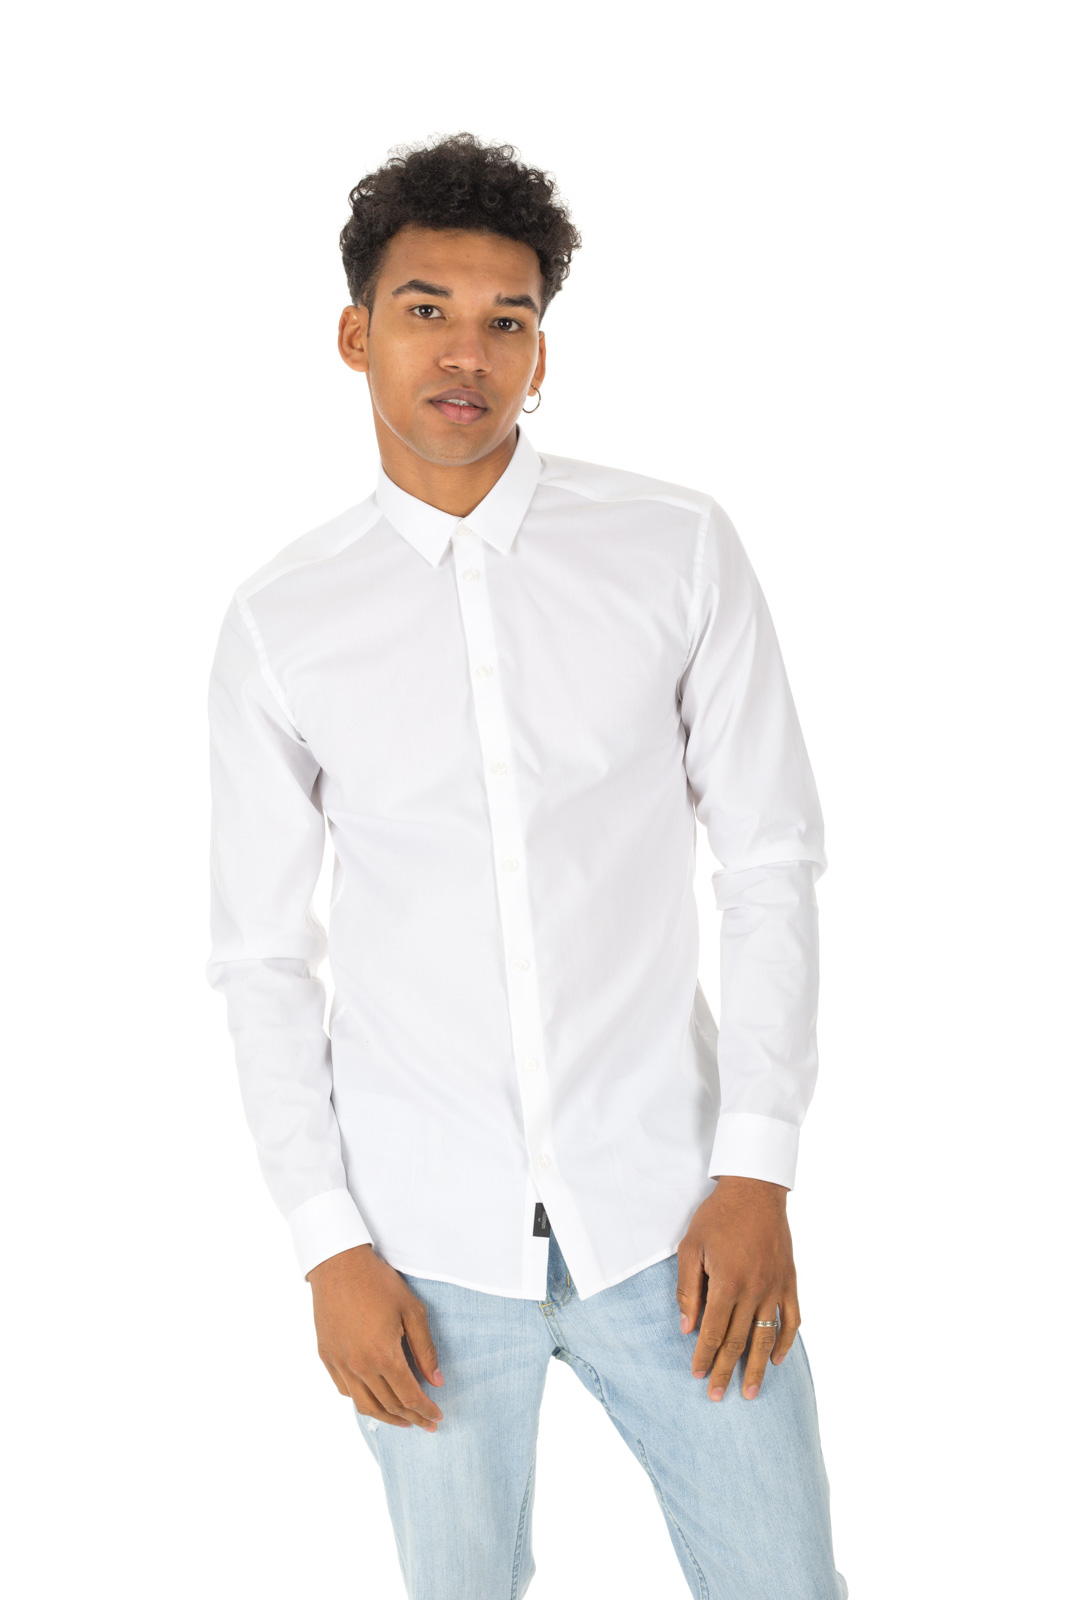 Minimum - Basic White Shirt Hall